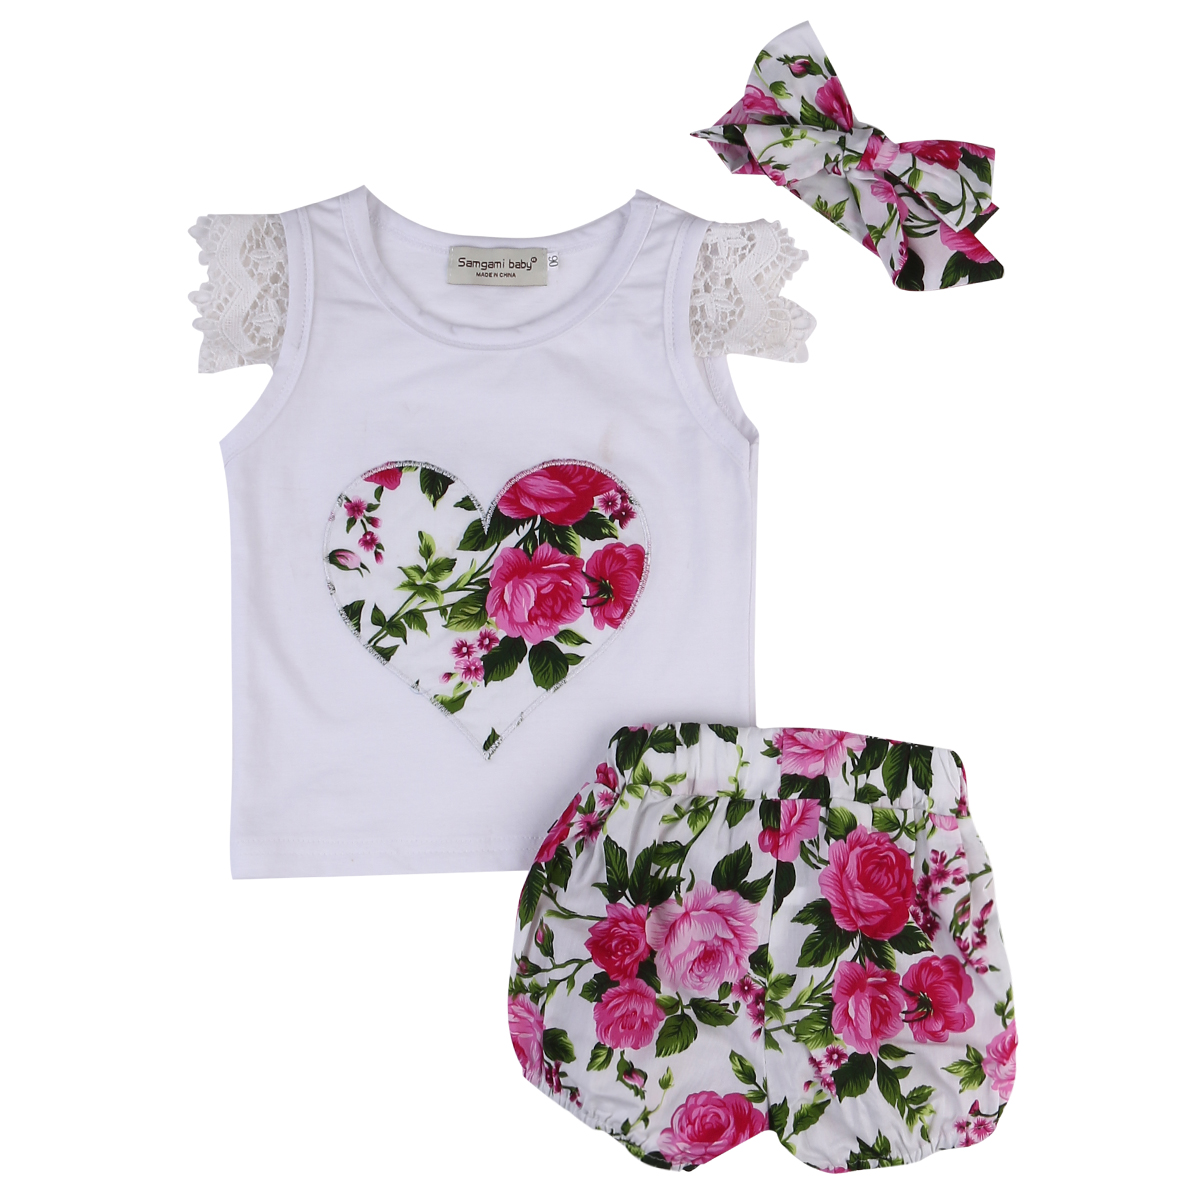 3PCS Set Summer Baby Girl Clothes 2017 Floral Lace Vest Tops + Bloomers Shorts Bottoms +Headband Outfits Children Clothing 0-3Y 0 24m floral baby girl clothes set 2017 summer sleeveless ruffles crop tops baby bloomers shorts 2pcs outfits children sunsuit